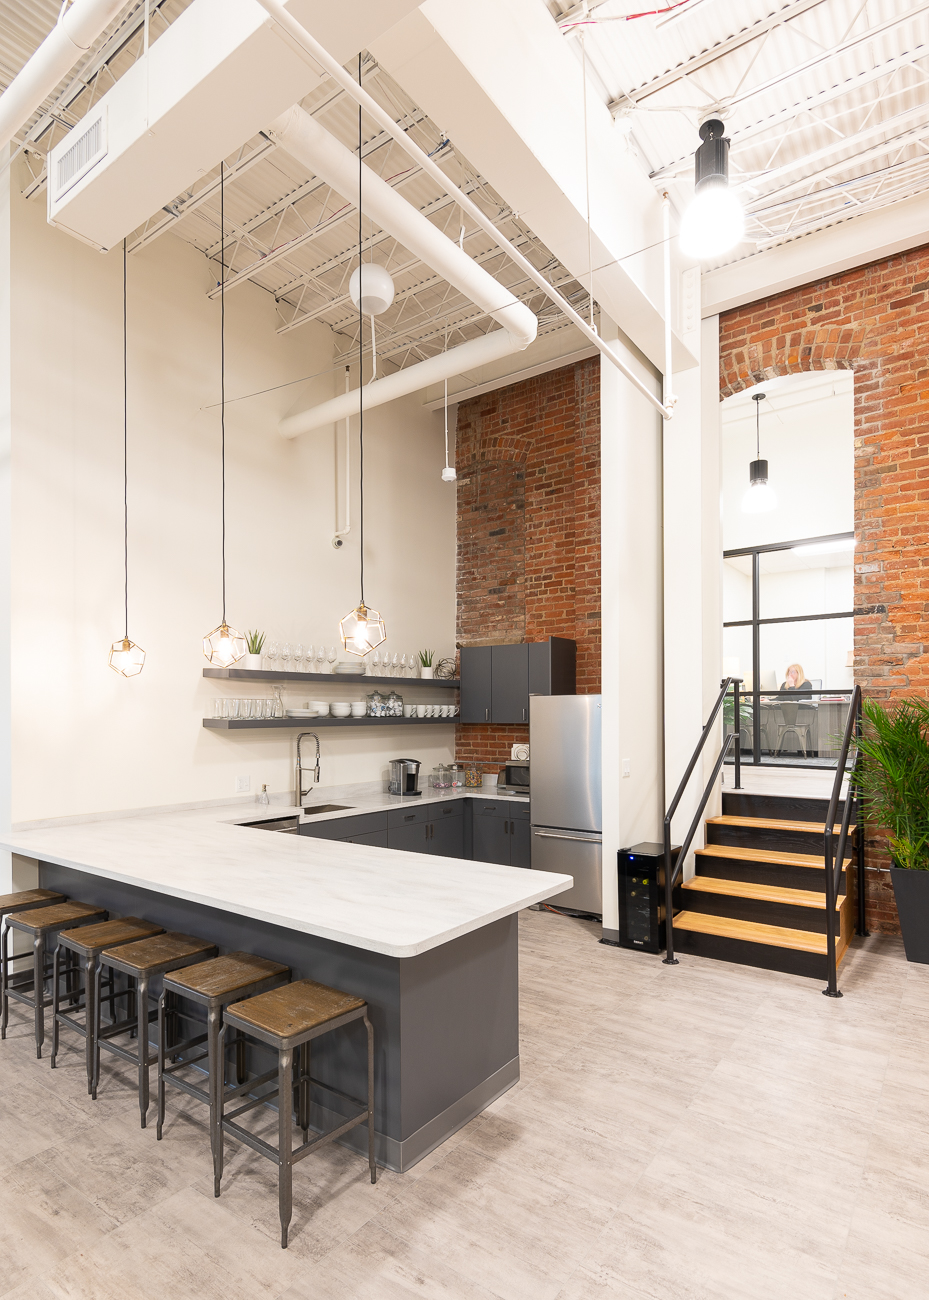 There's a communal kitchen for employees. / Image: Phil Armstrong, Cincinnati Refined // Published: 3.22.19